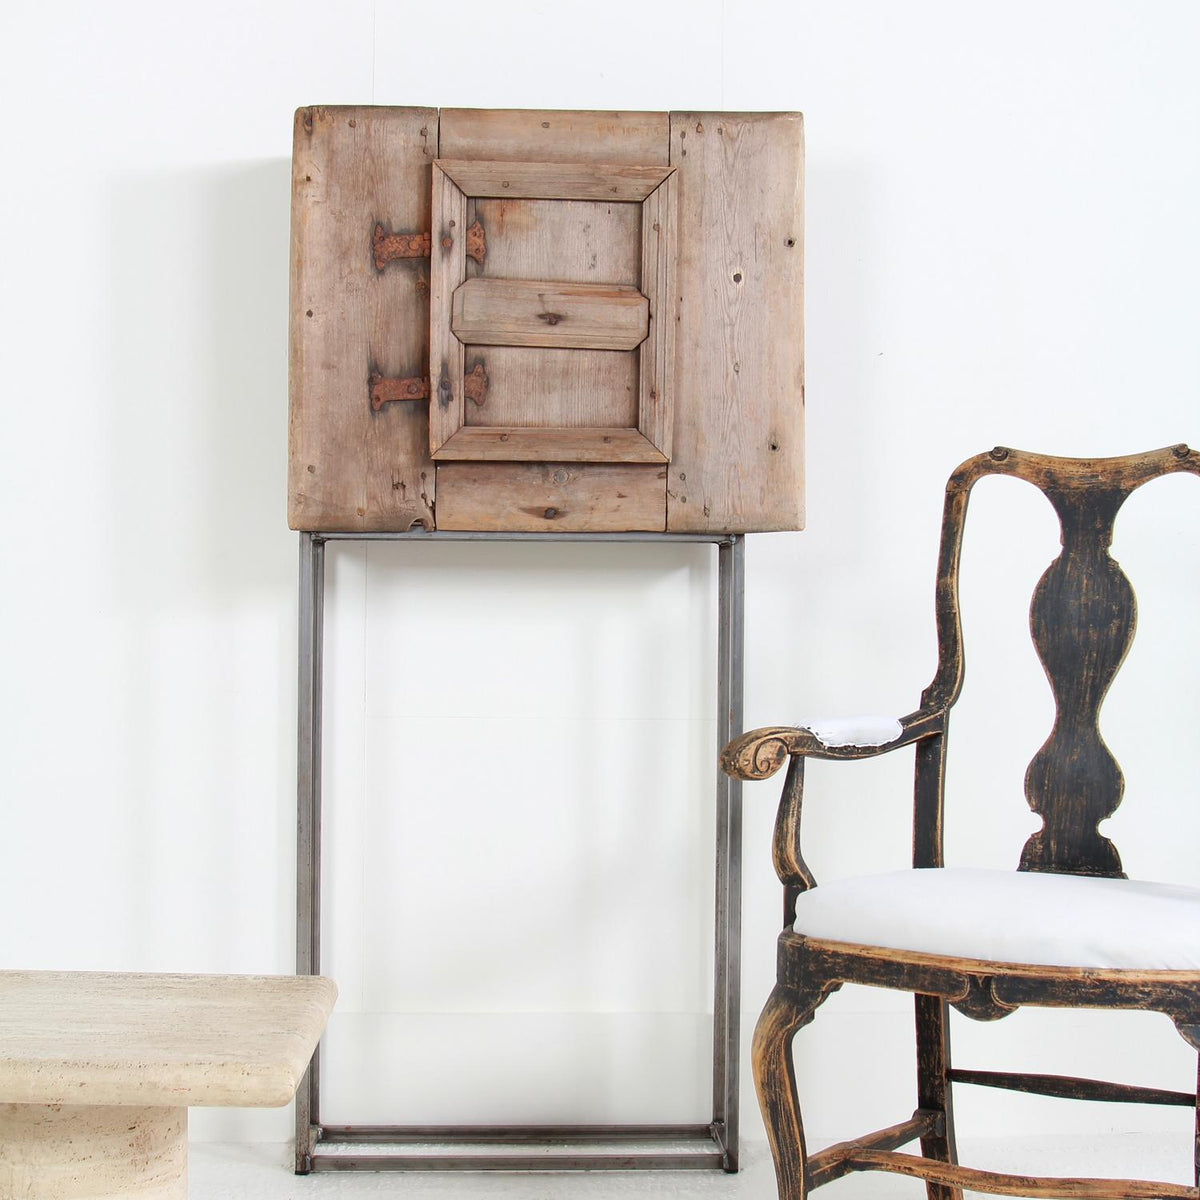 Baroque Swedish 18thC Cabinet on Metal Stand